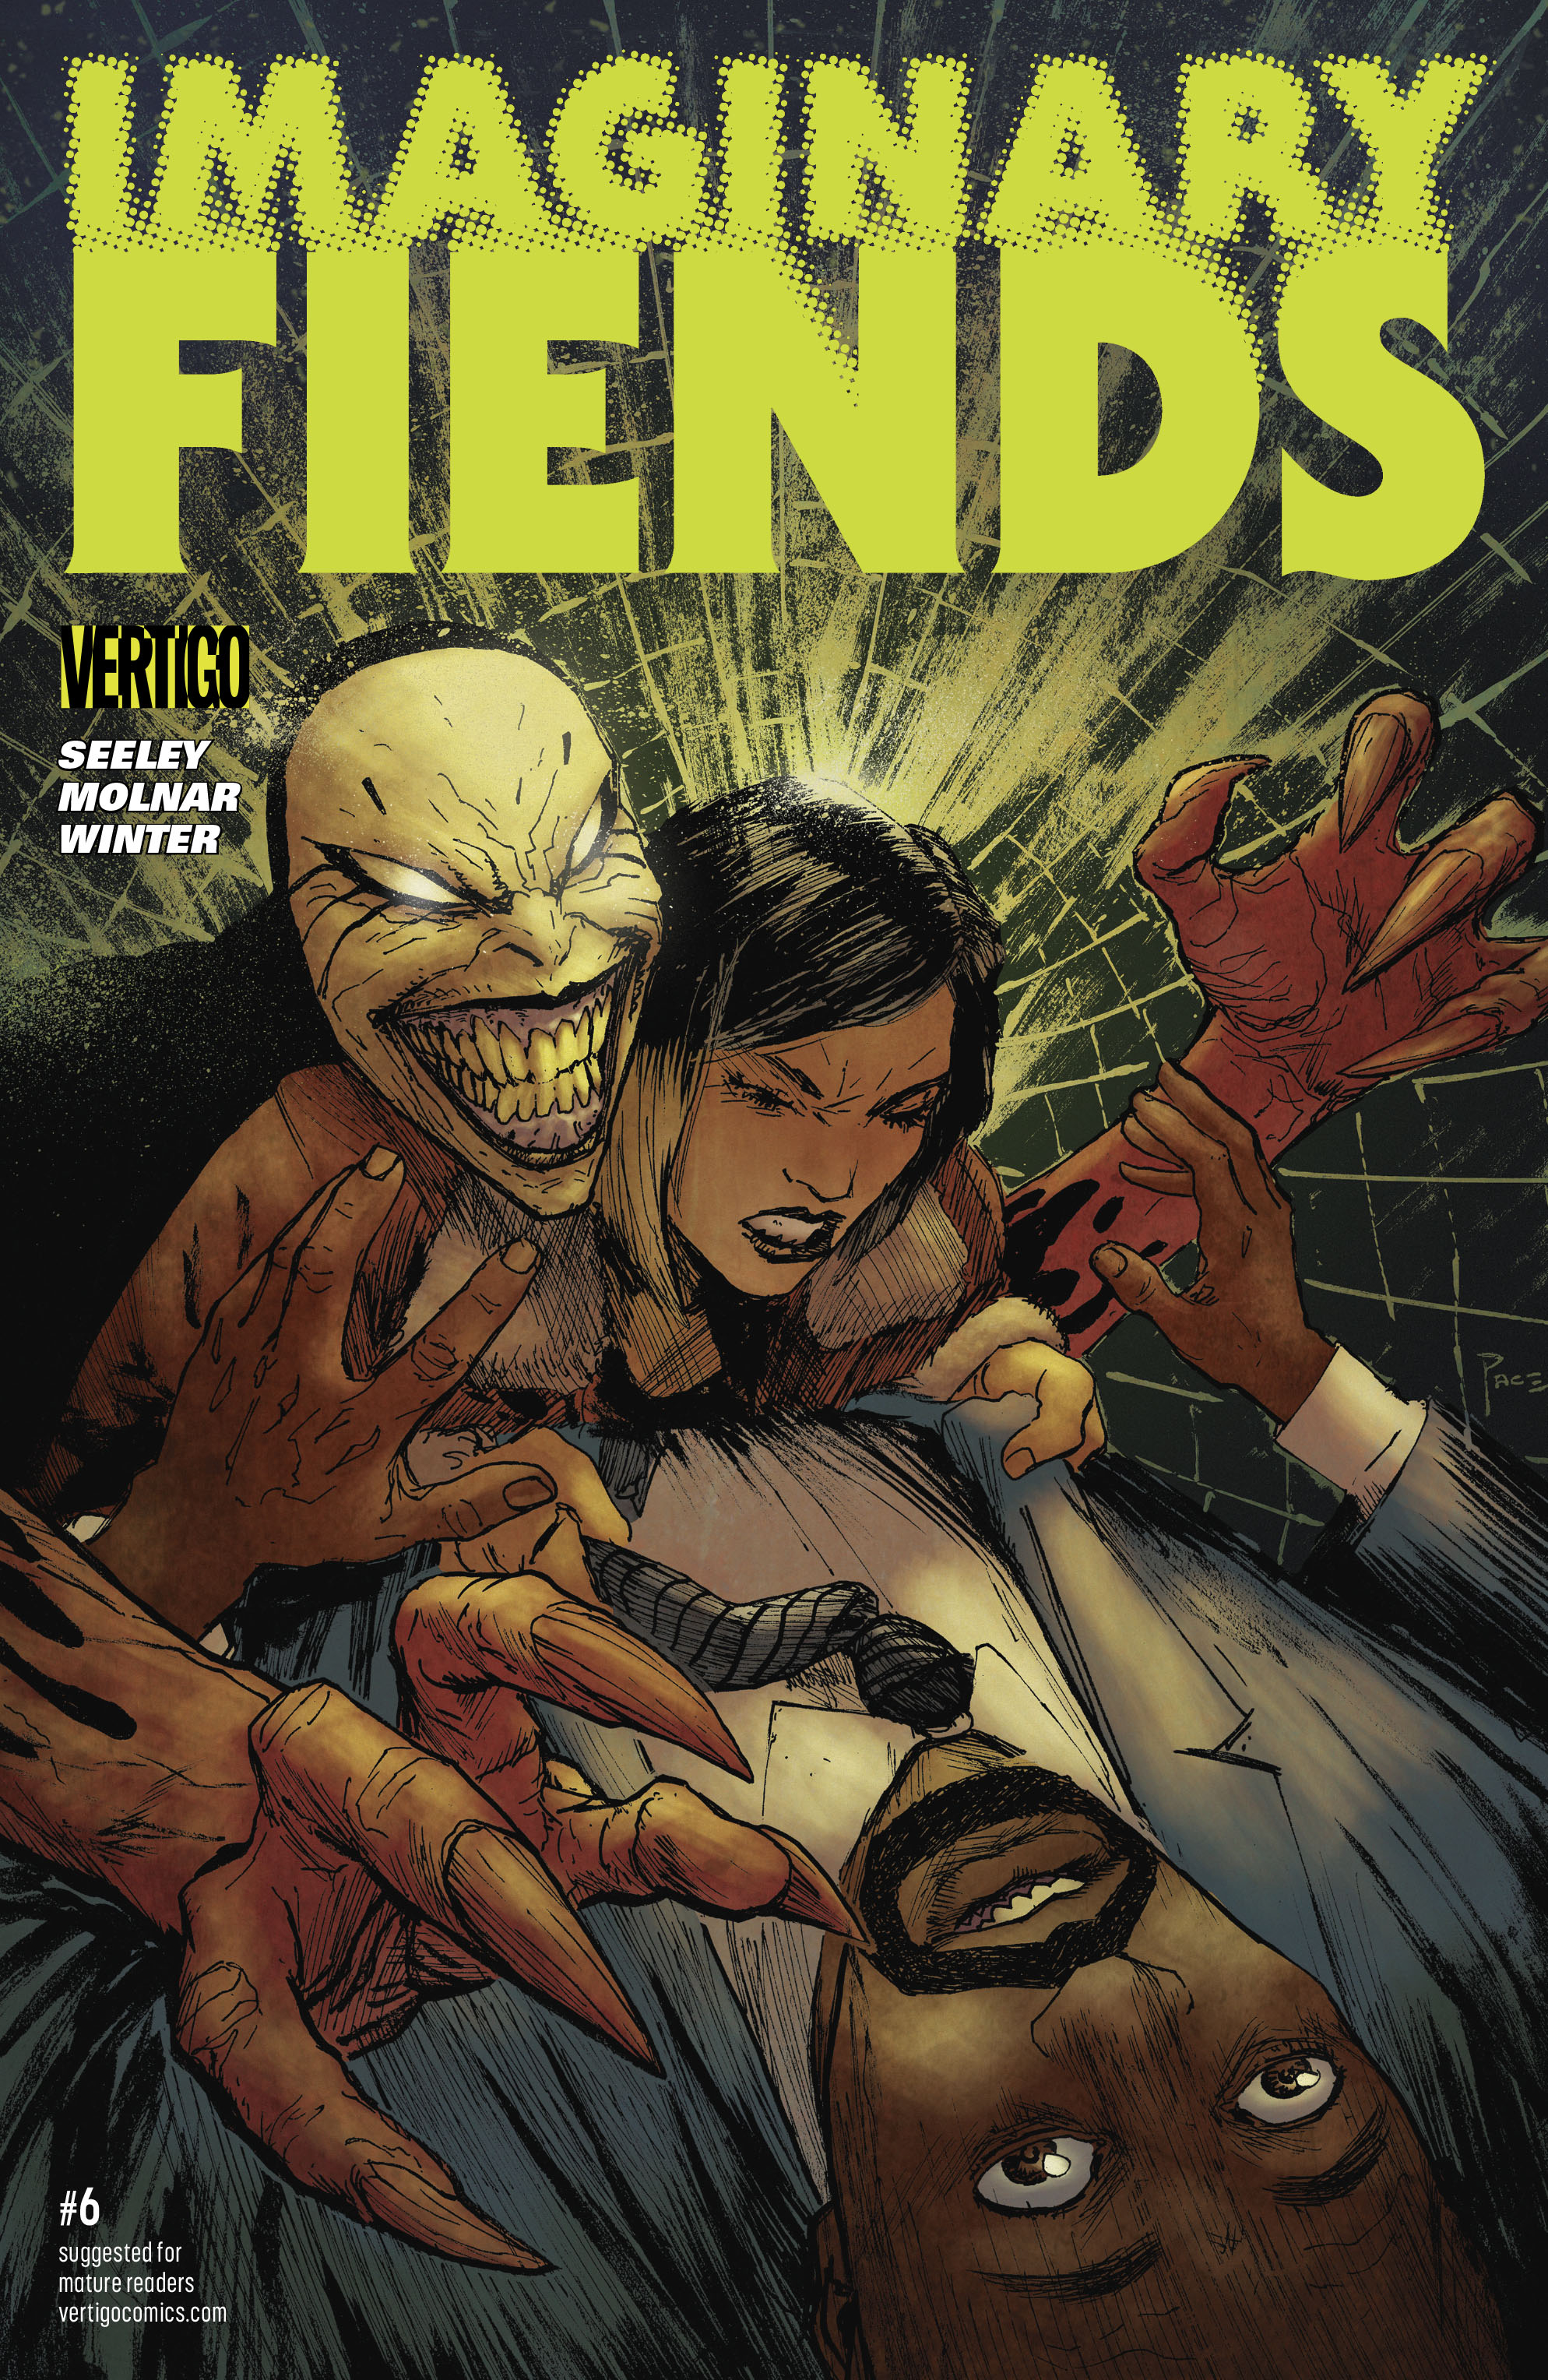 BOOK OF FIENDS DOWNLOAD